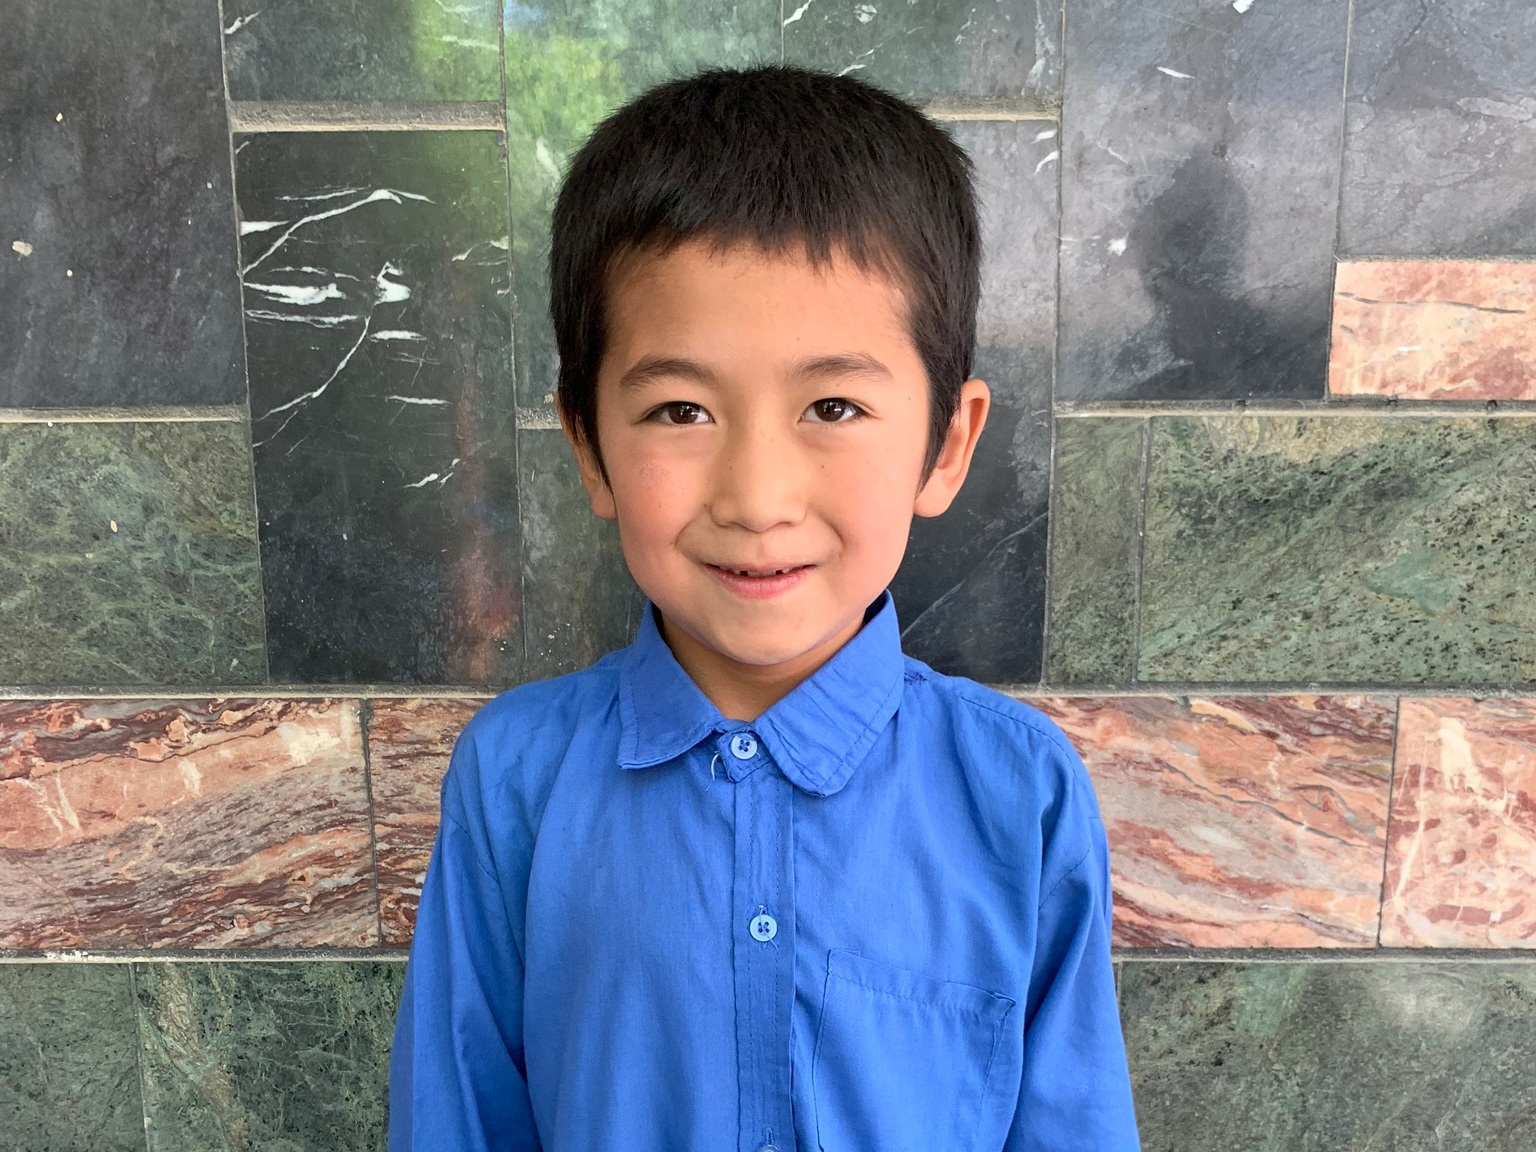 Ali, Age 8 - Ali has 6 siblings. His mother does not have work. His father works at a bath house.BE ALI'S PARTNER>